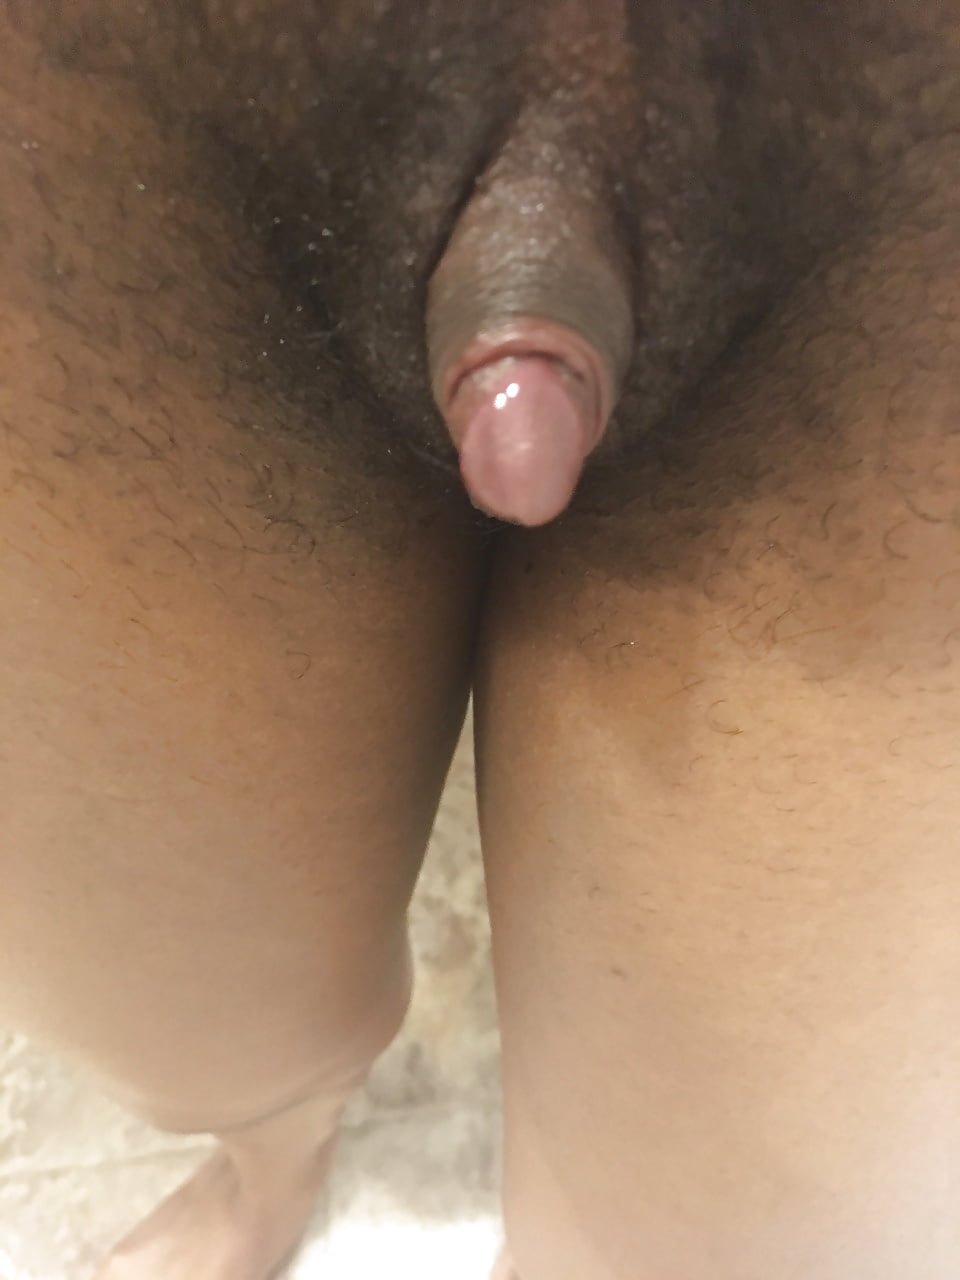 Extra large clit